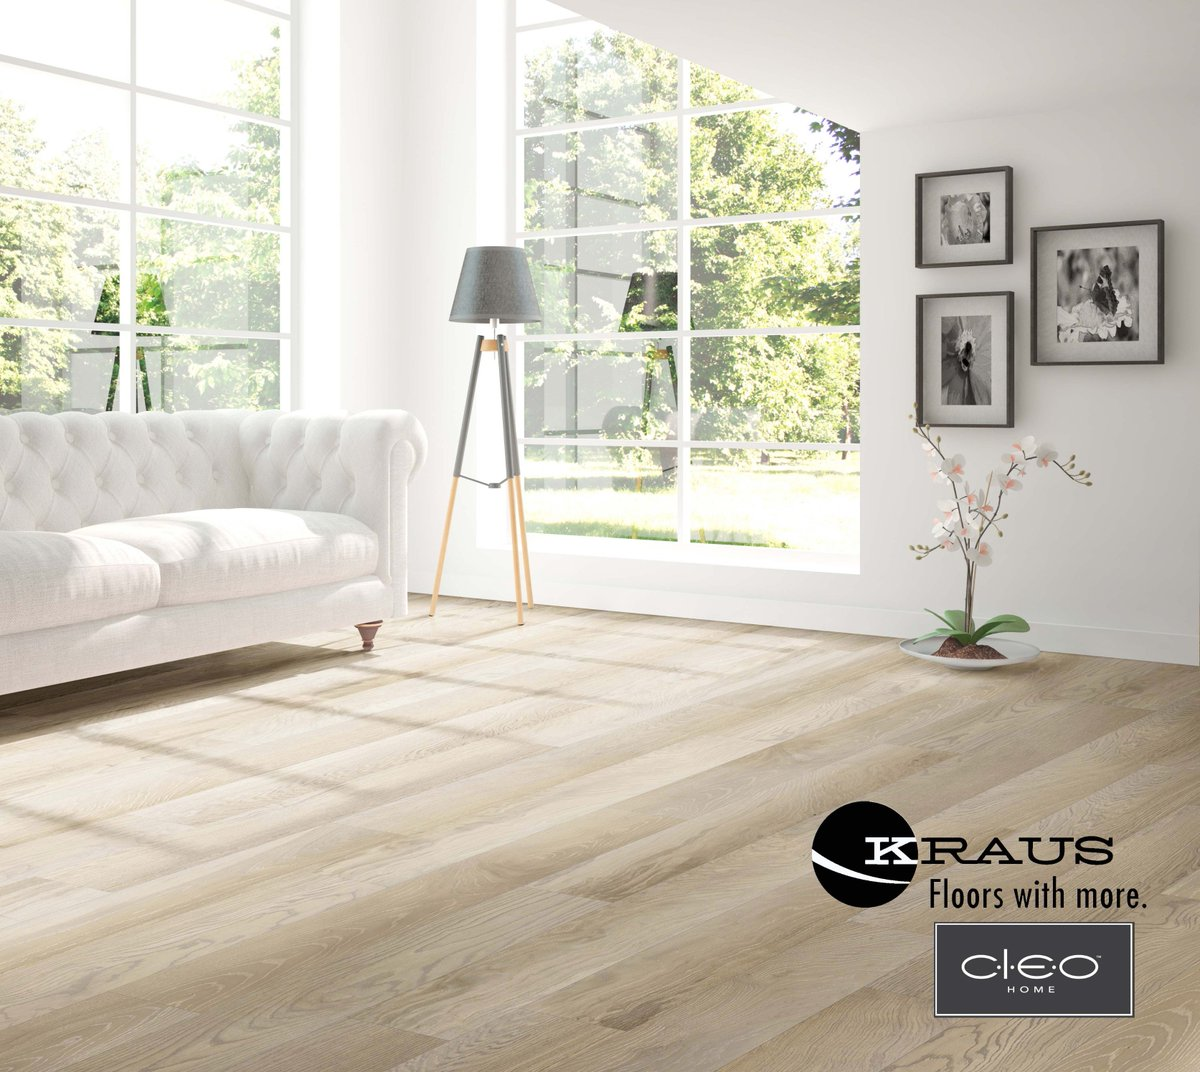 Meet CLEO by Kraus Flooring. An innovative, engineered flooring construction that is eco-friendly with stunning visual artistry.